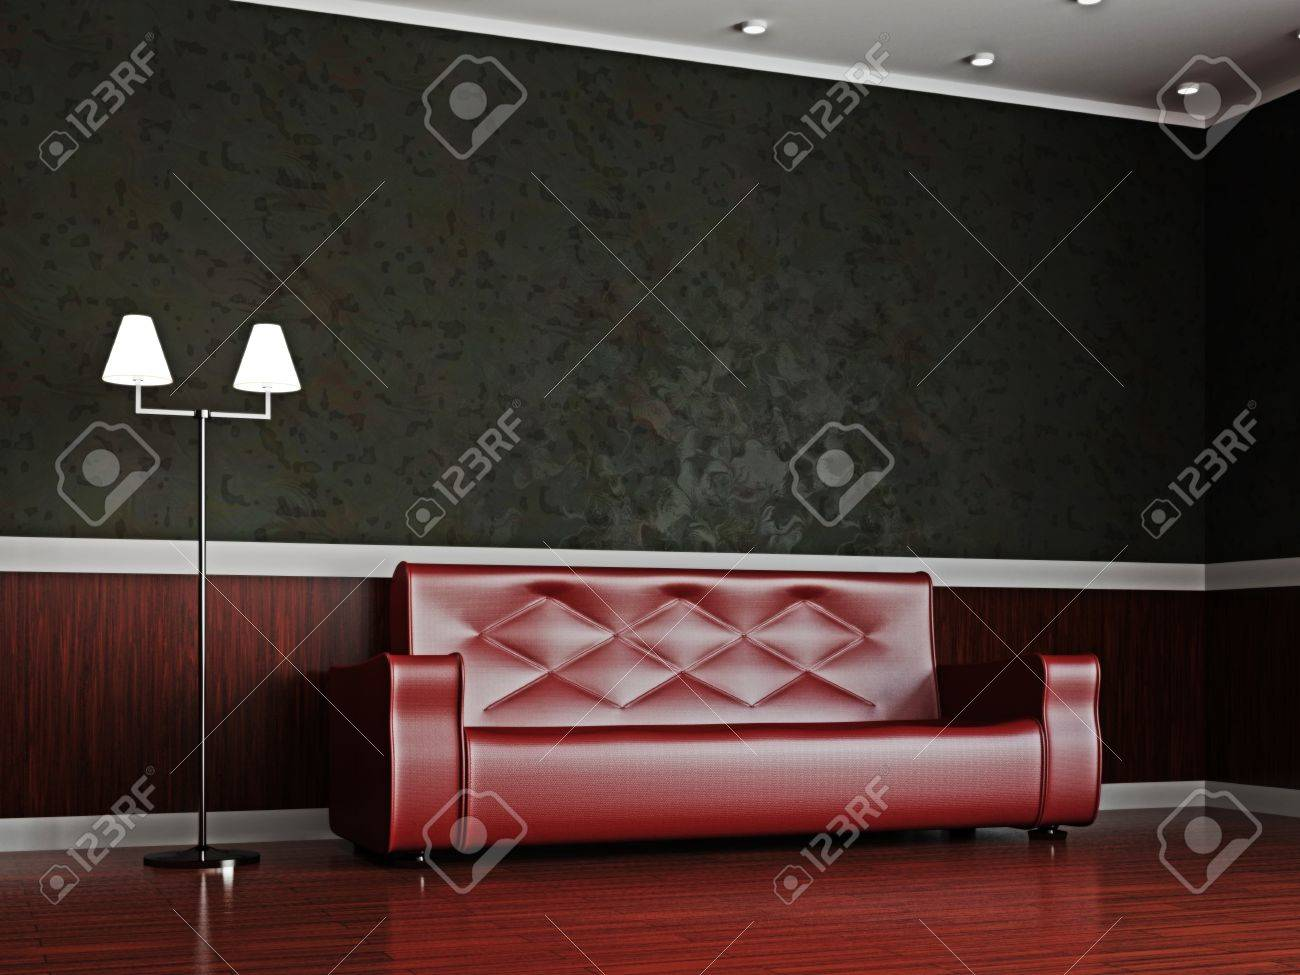 a room interior with a red leather sofa stock photo